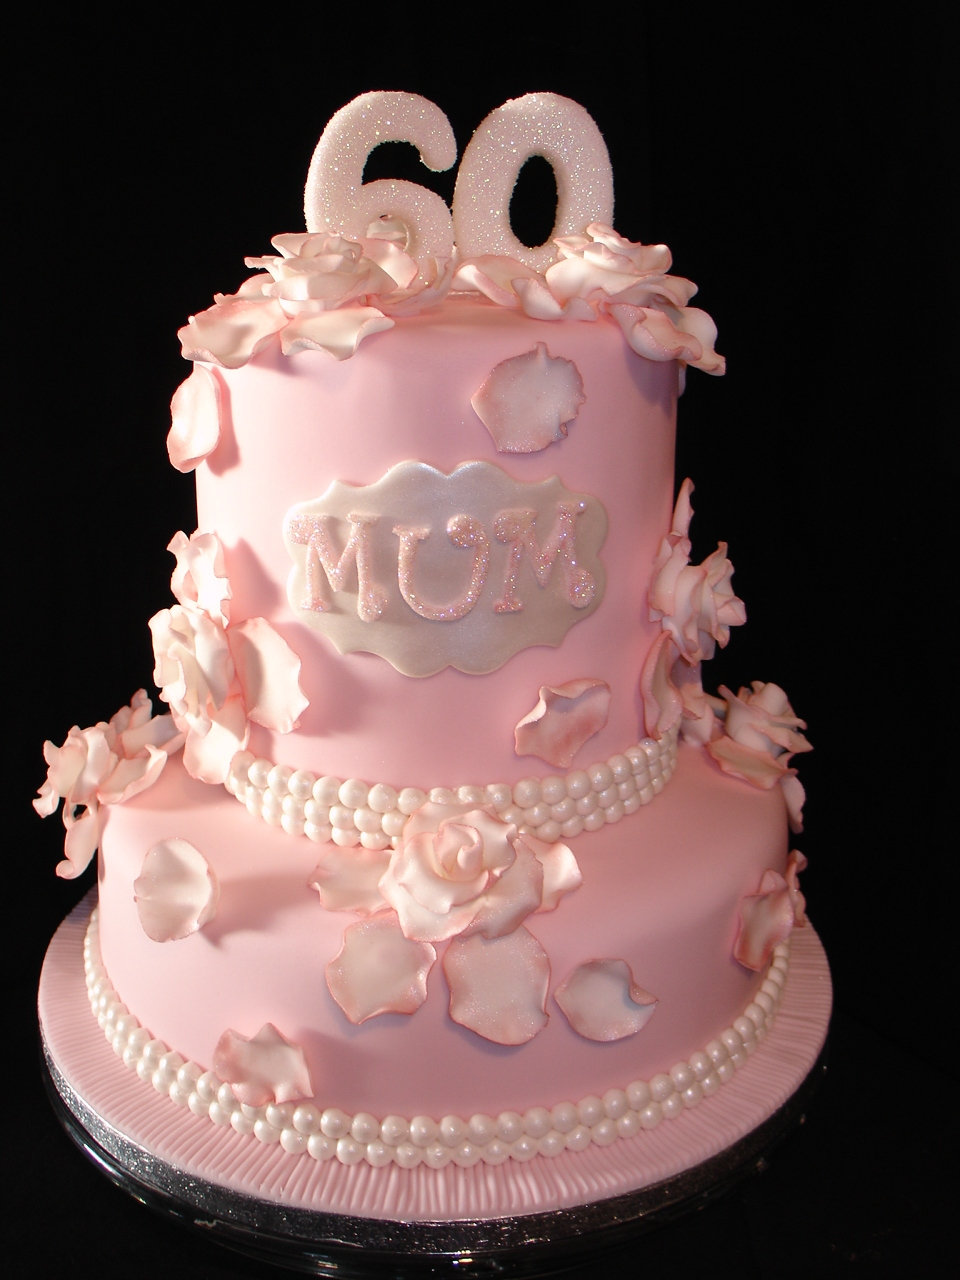 Pale Pink 60Th Birthday Fondant Cake - CakeCentral.com